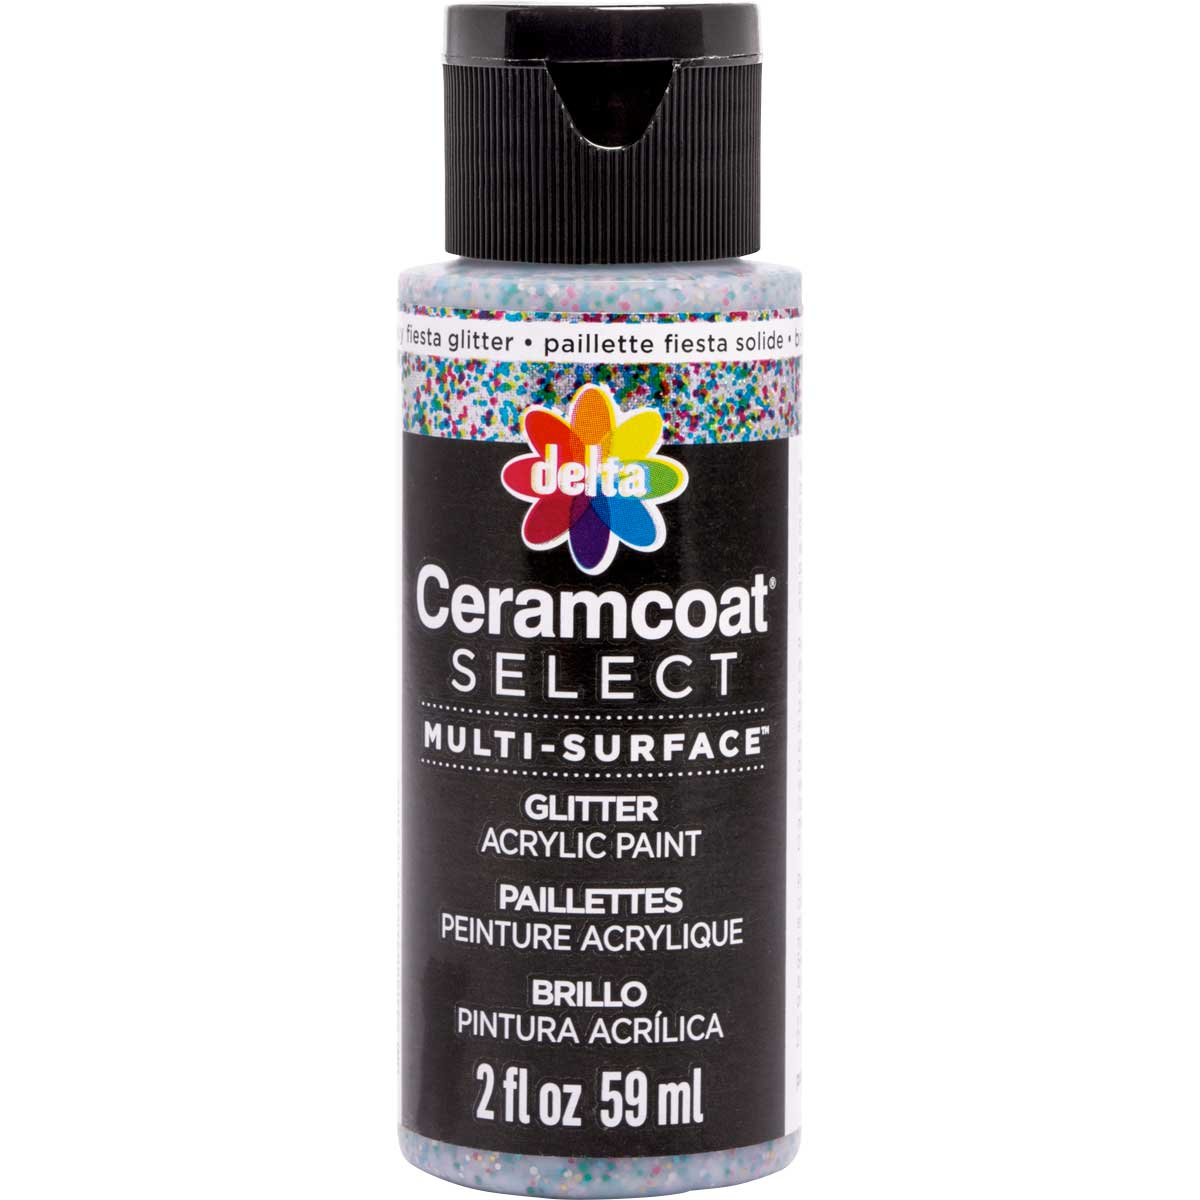 Delta Ceramcoat ® Select Multi-Surface Acrylic Paint - Glitter - Chunky Fiesta Silver, 2 oz. - 04117